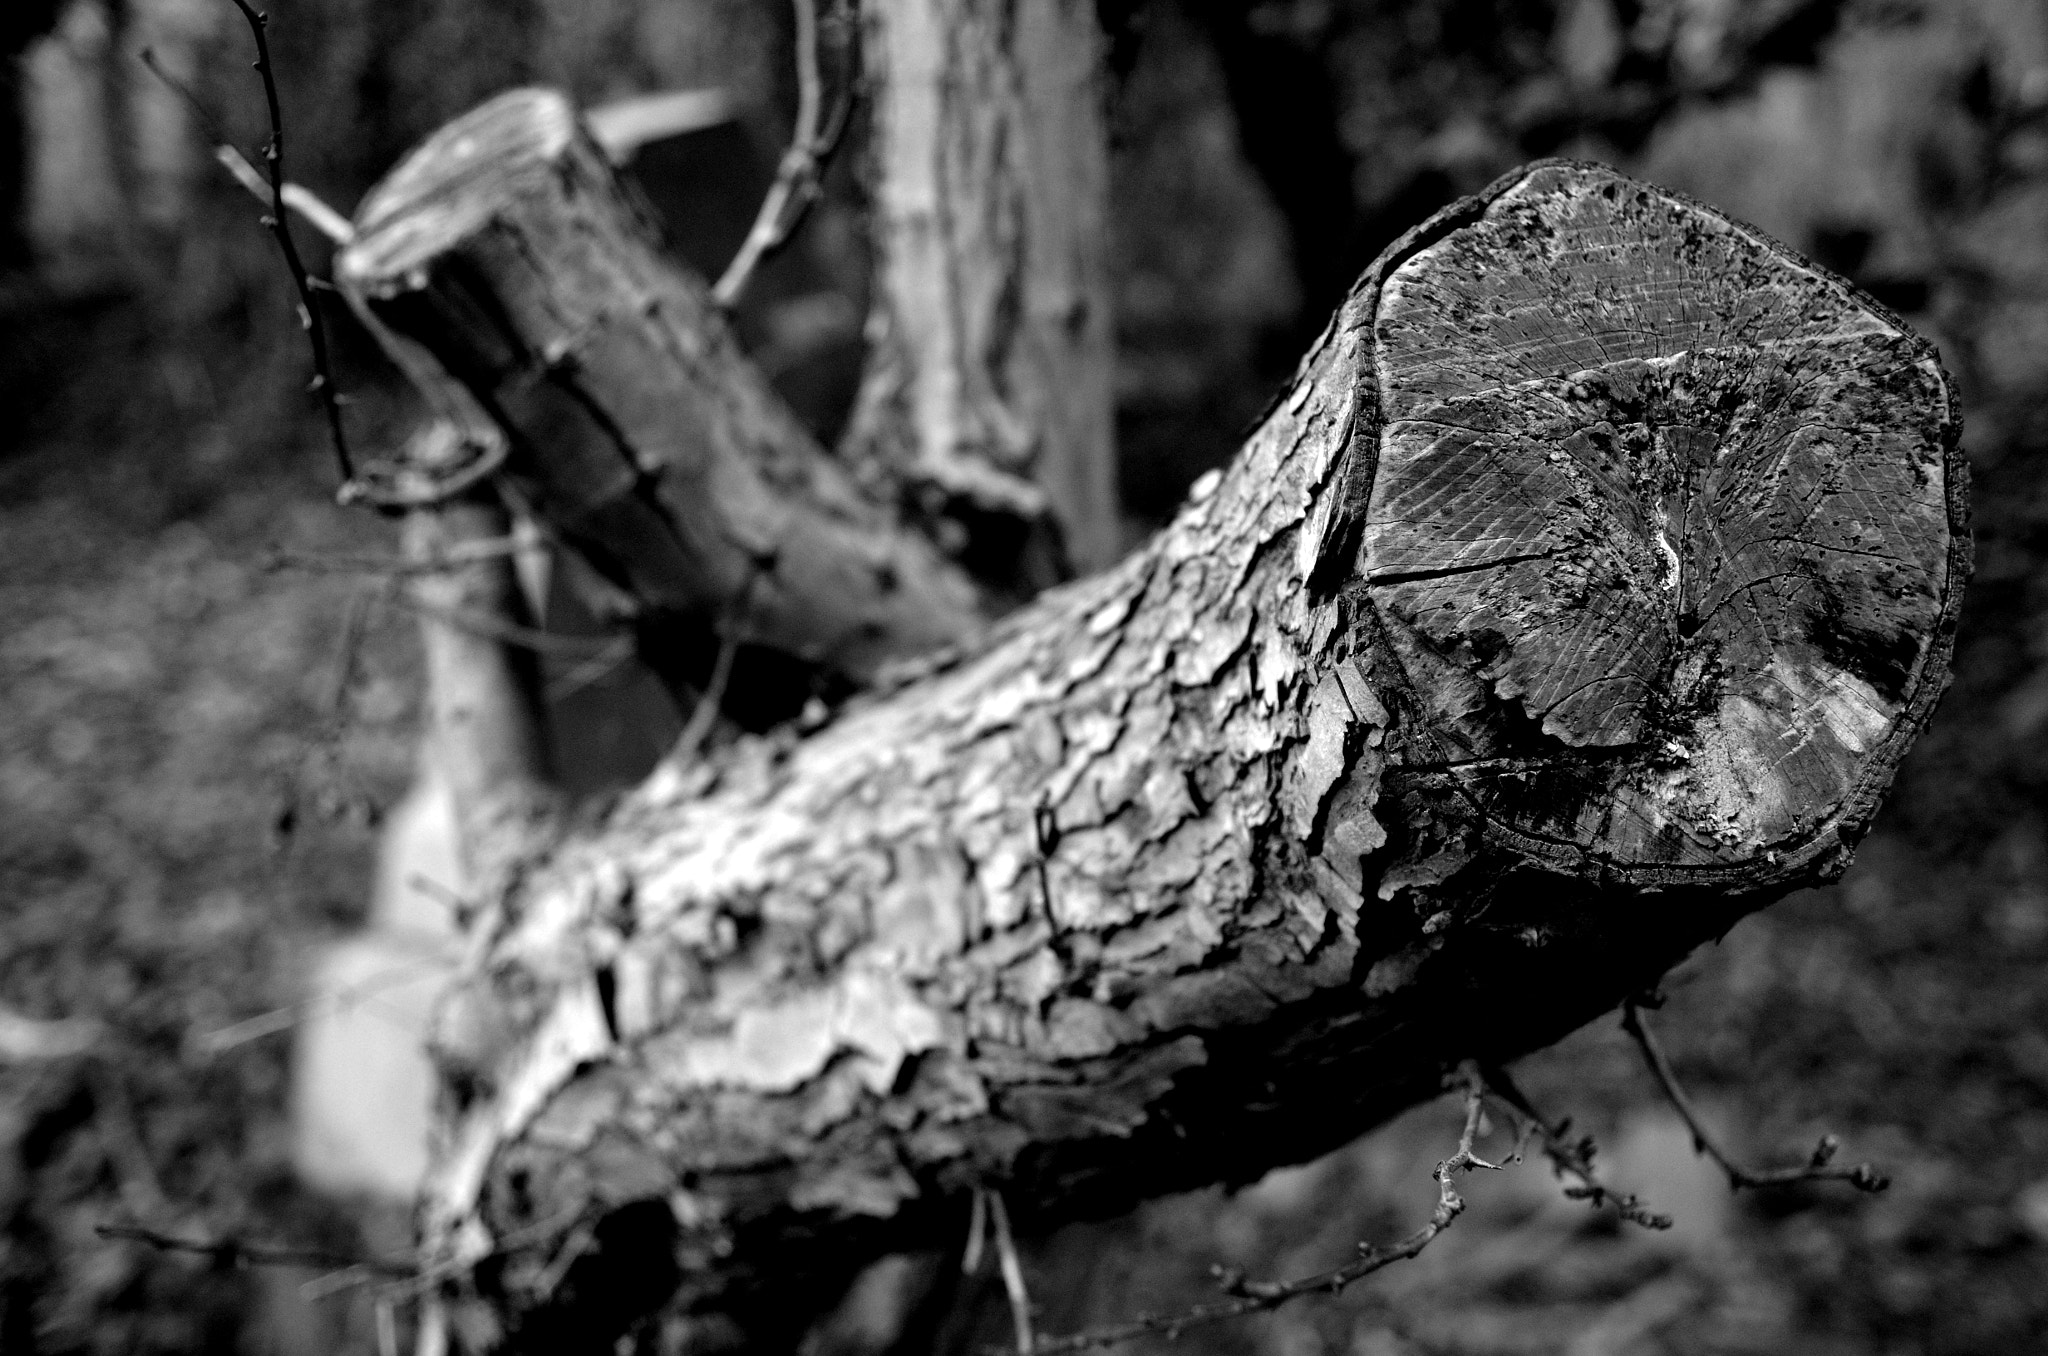 Photograph Felled Tree Branch by MalekPhotography on 500px